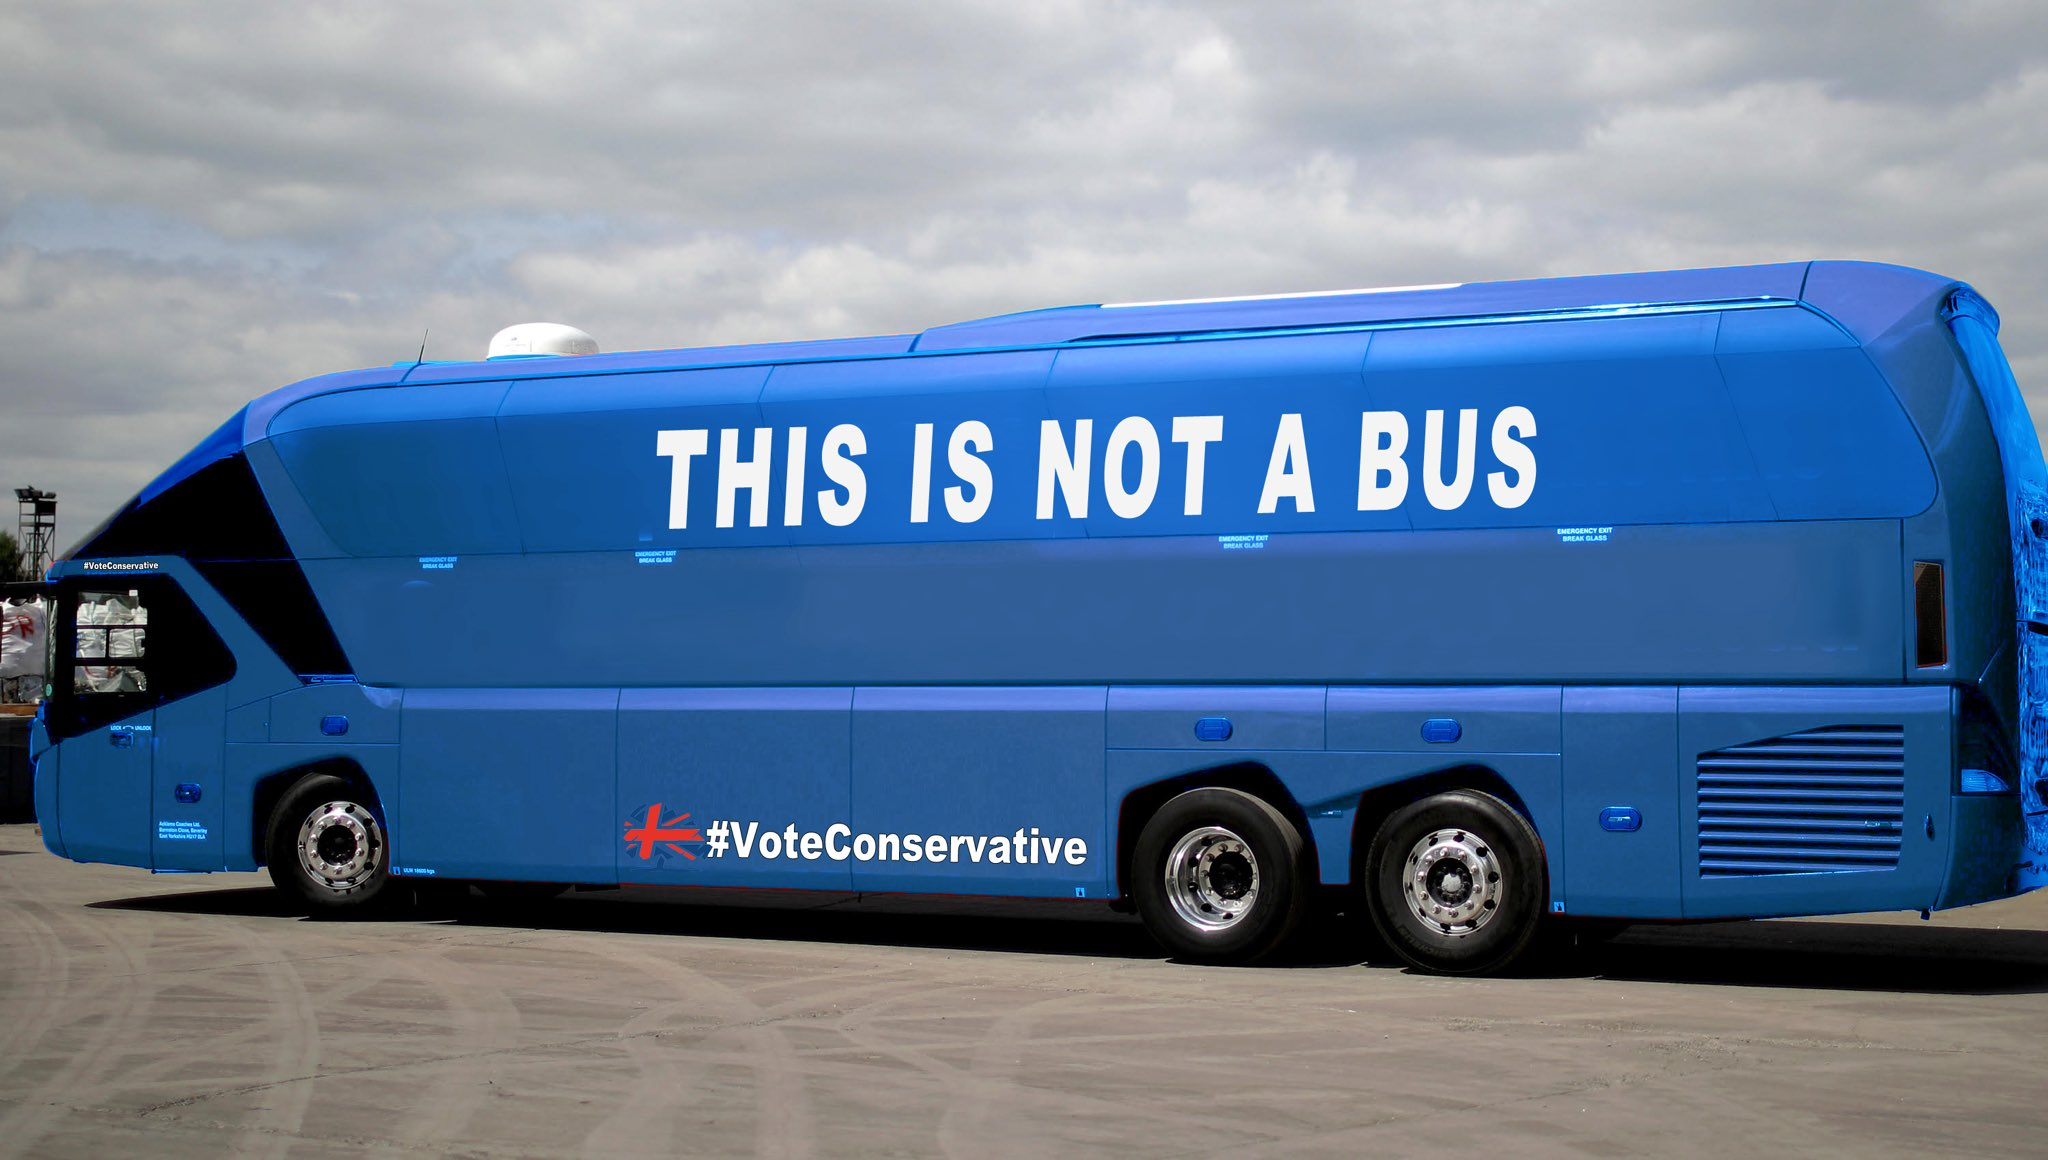 Given what happened at the referendum, I'm looking forward to seeing what the Tories put on their bus. https://t.co/TIacS1xPAO